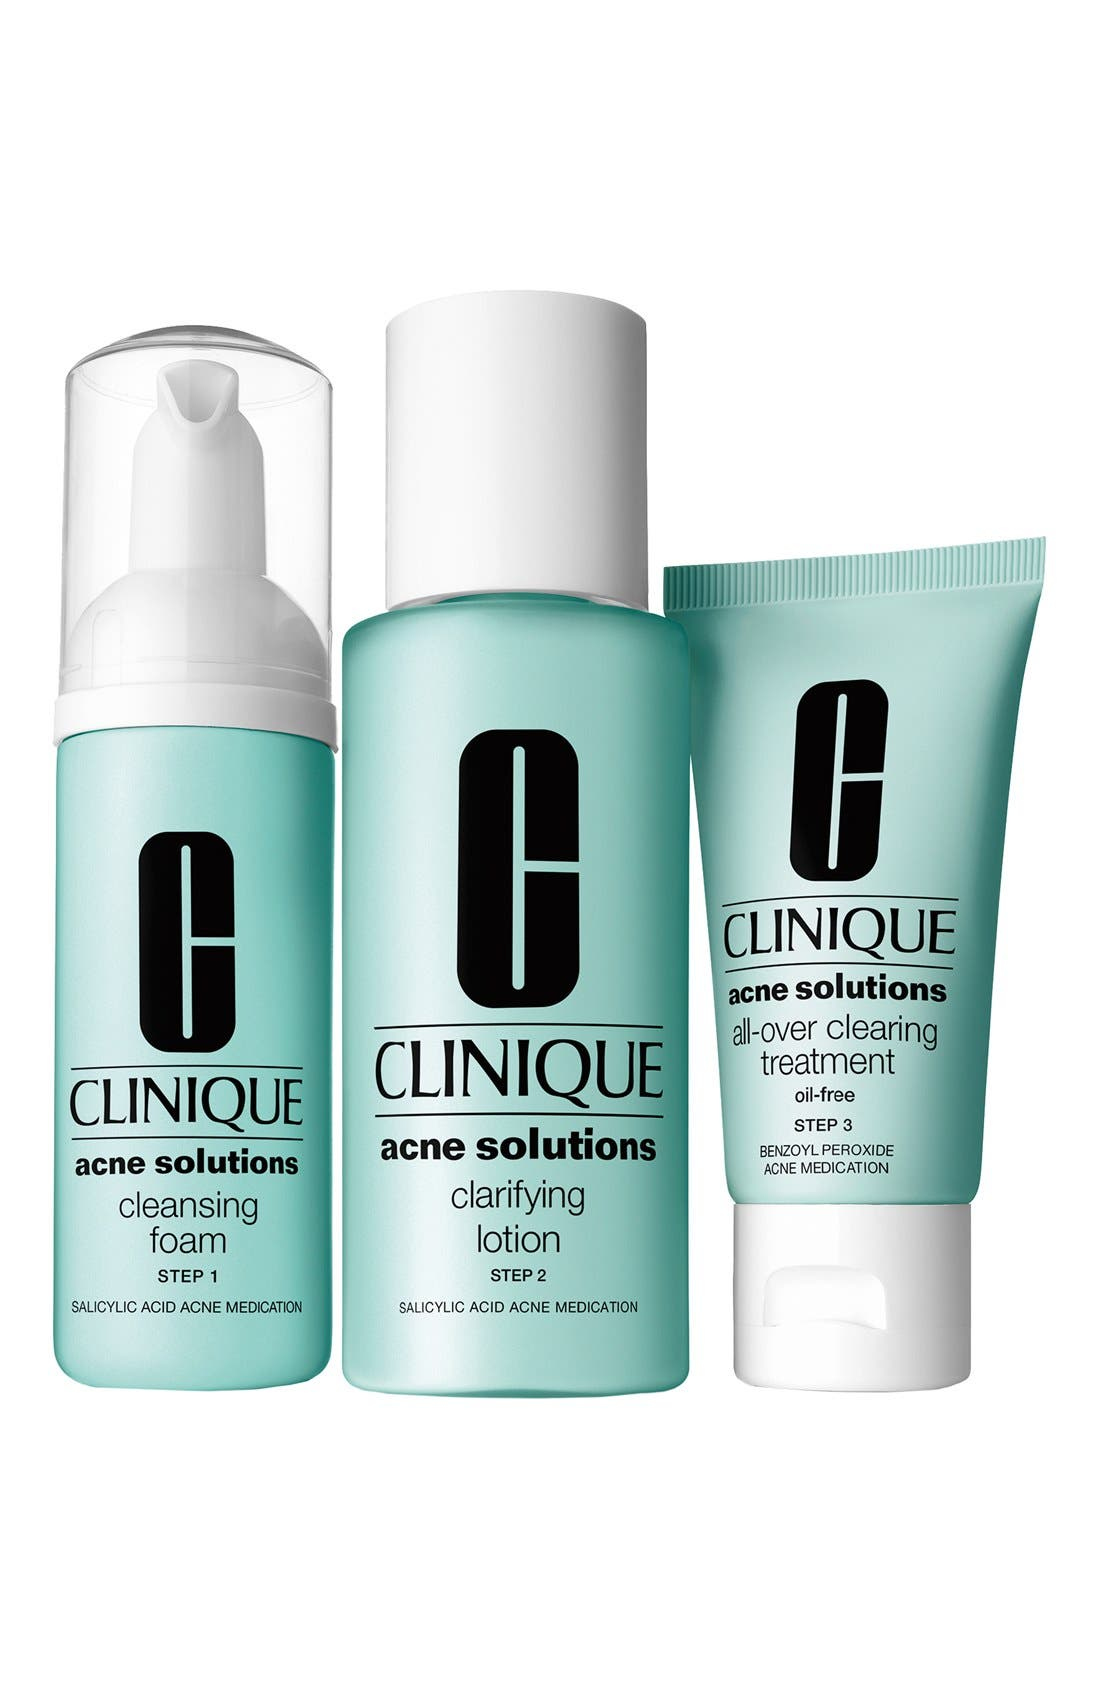 Clinique 'Acne Solutions' Clear Skin System Starter Kit